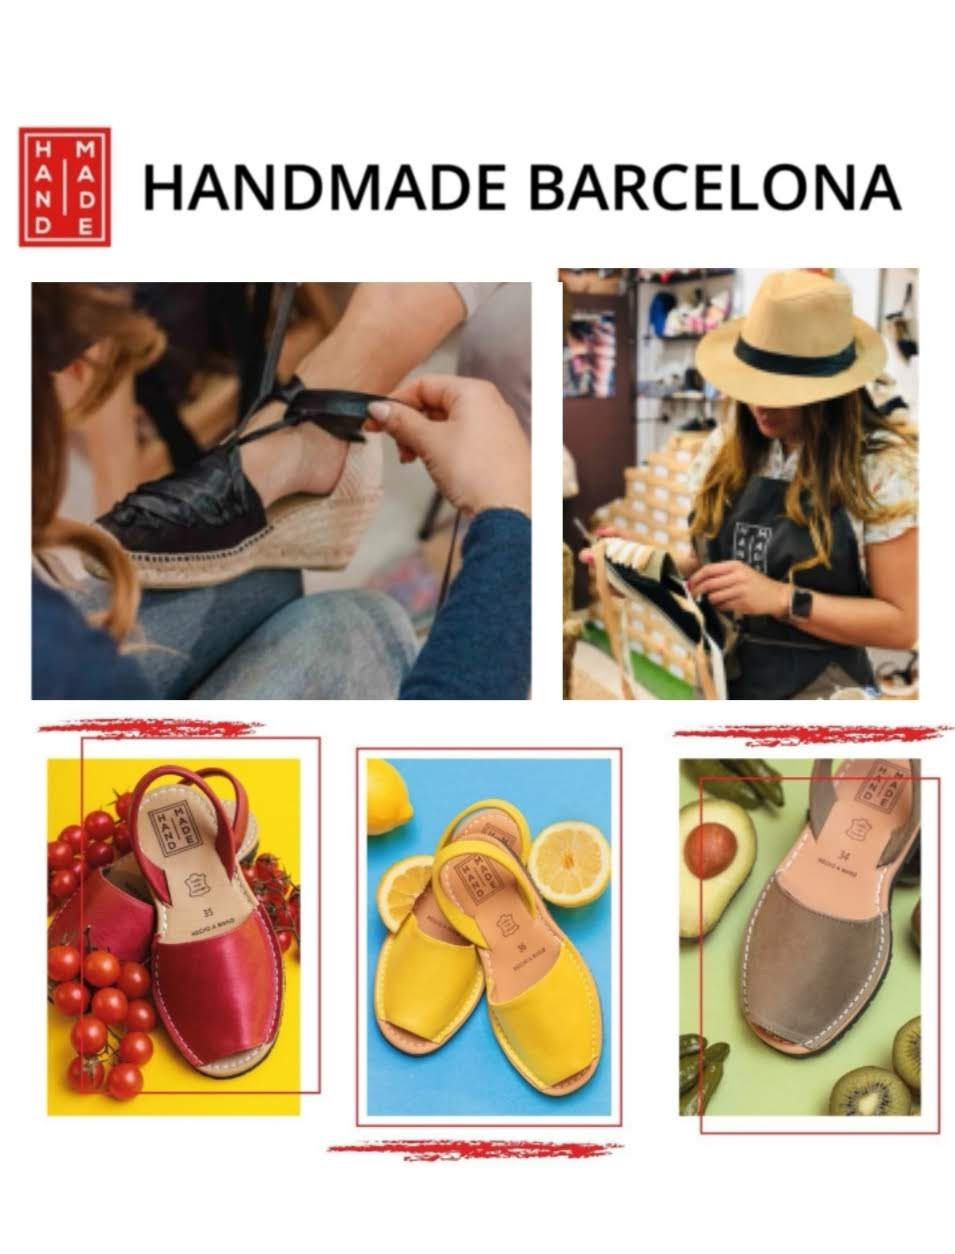 Know That Your Shoes Are Ethically Handmade, By Happy Artisans.